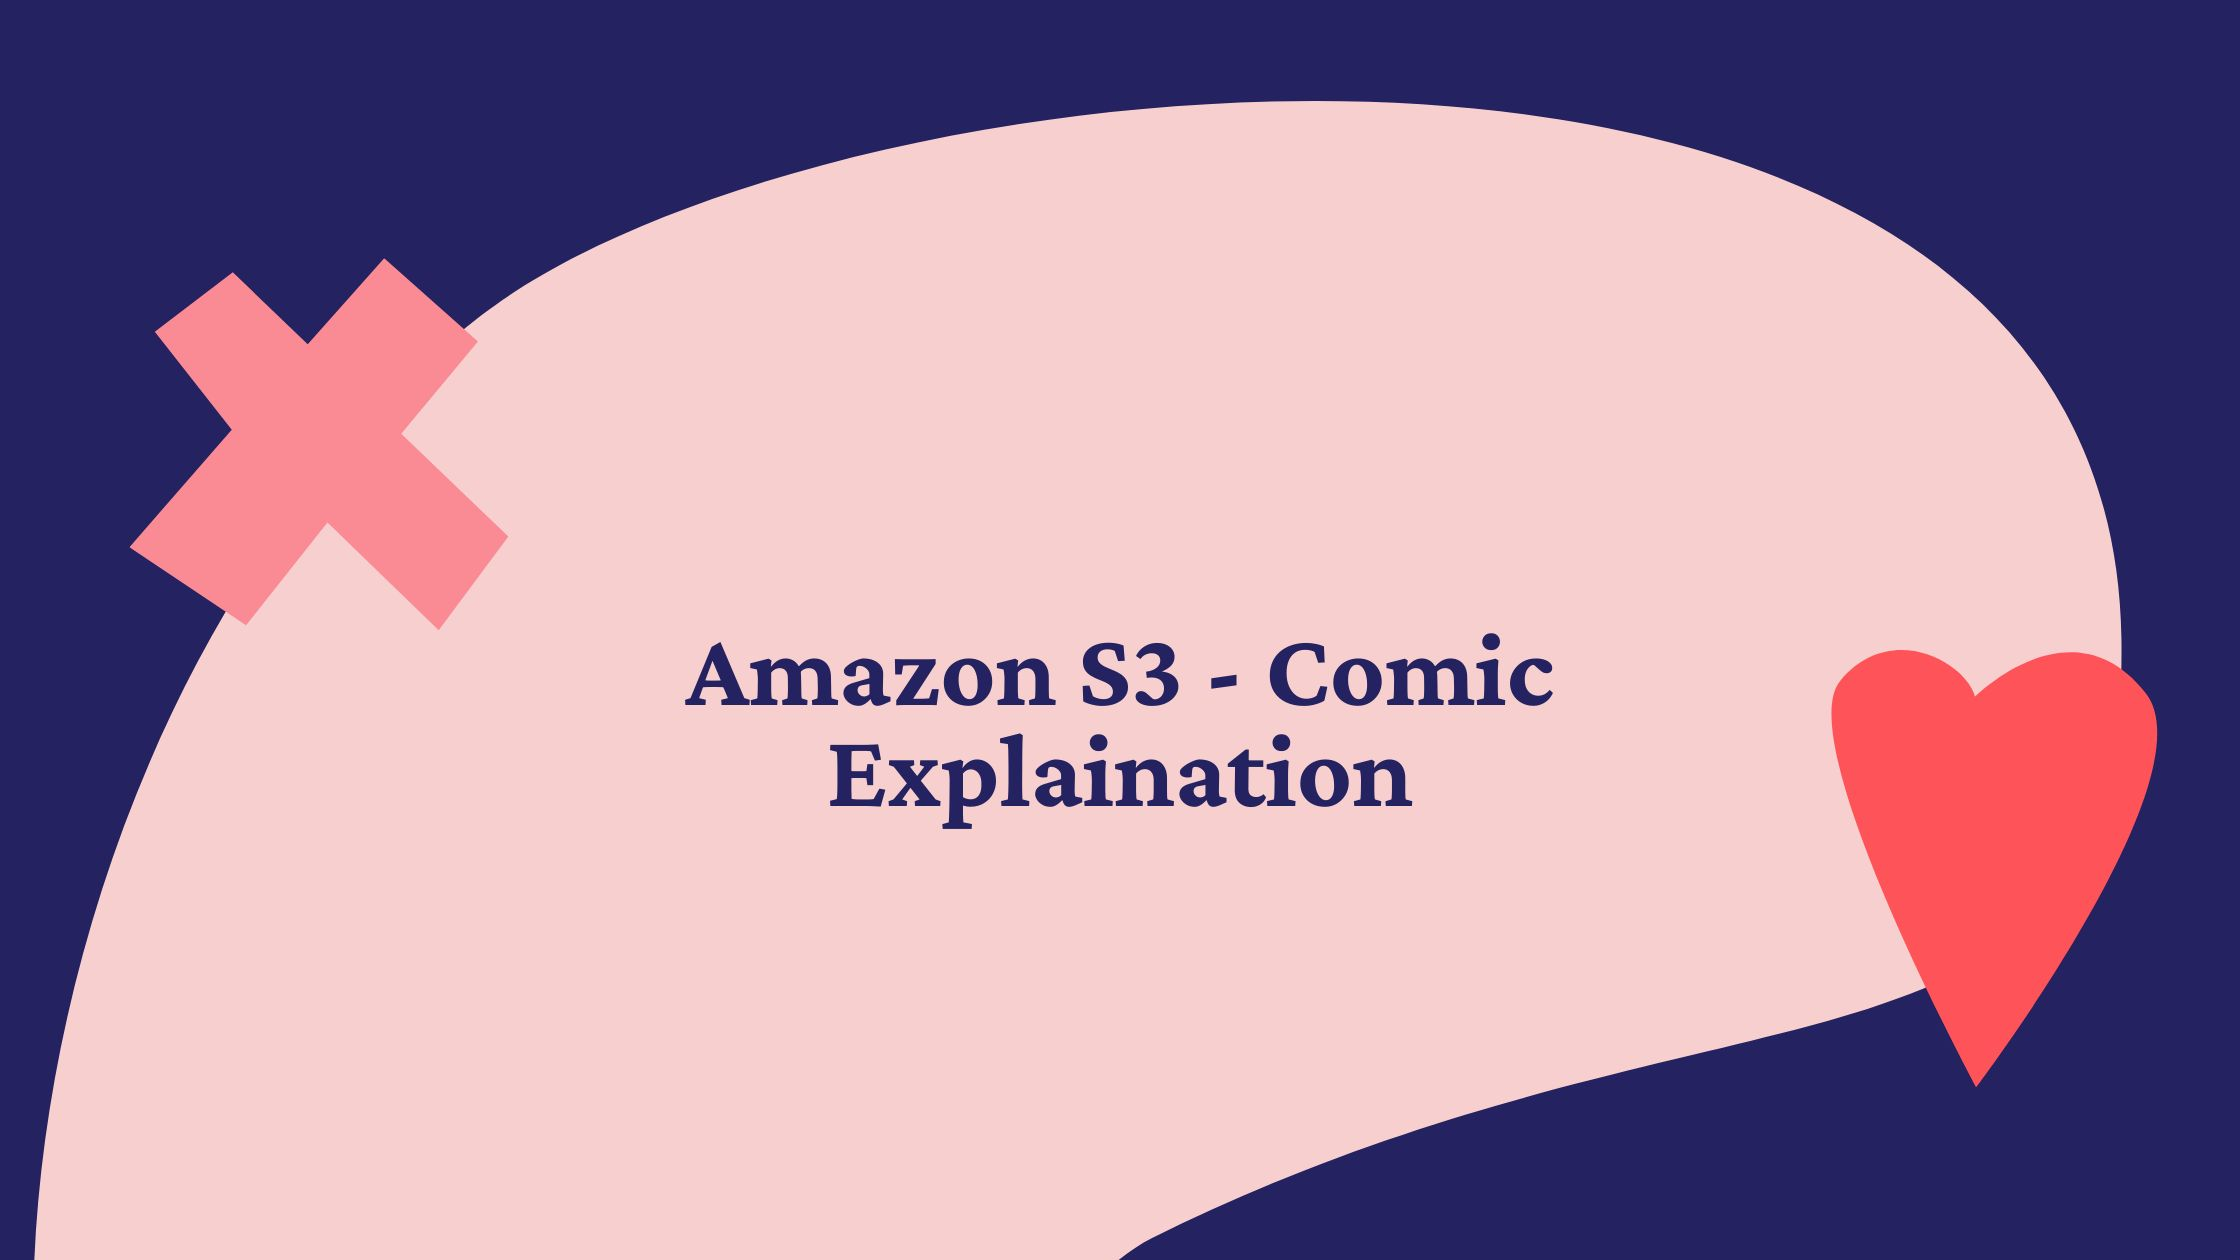 /the-benefits-of-amazon-s3-explained-through-a-comic-nw333w1y feature image